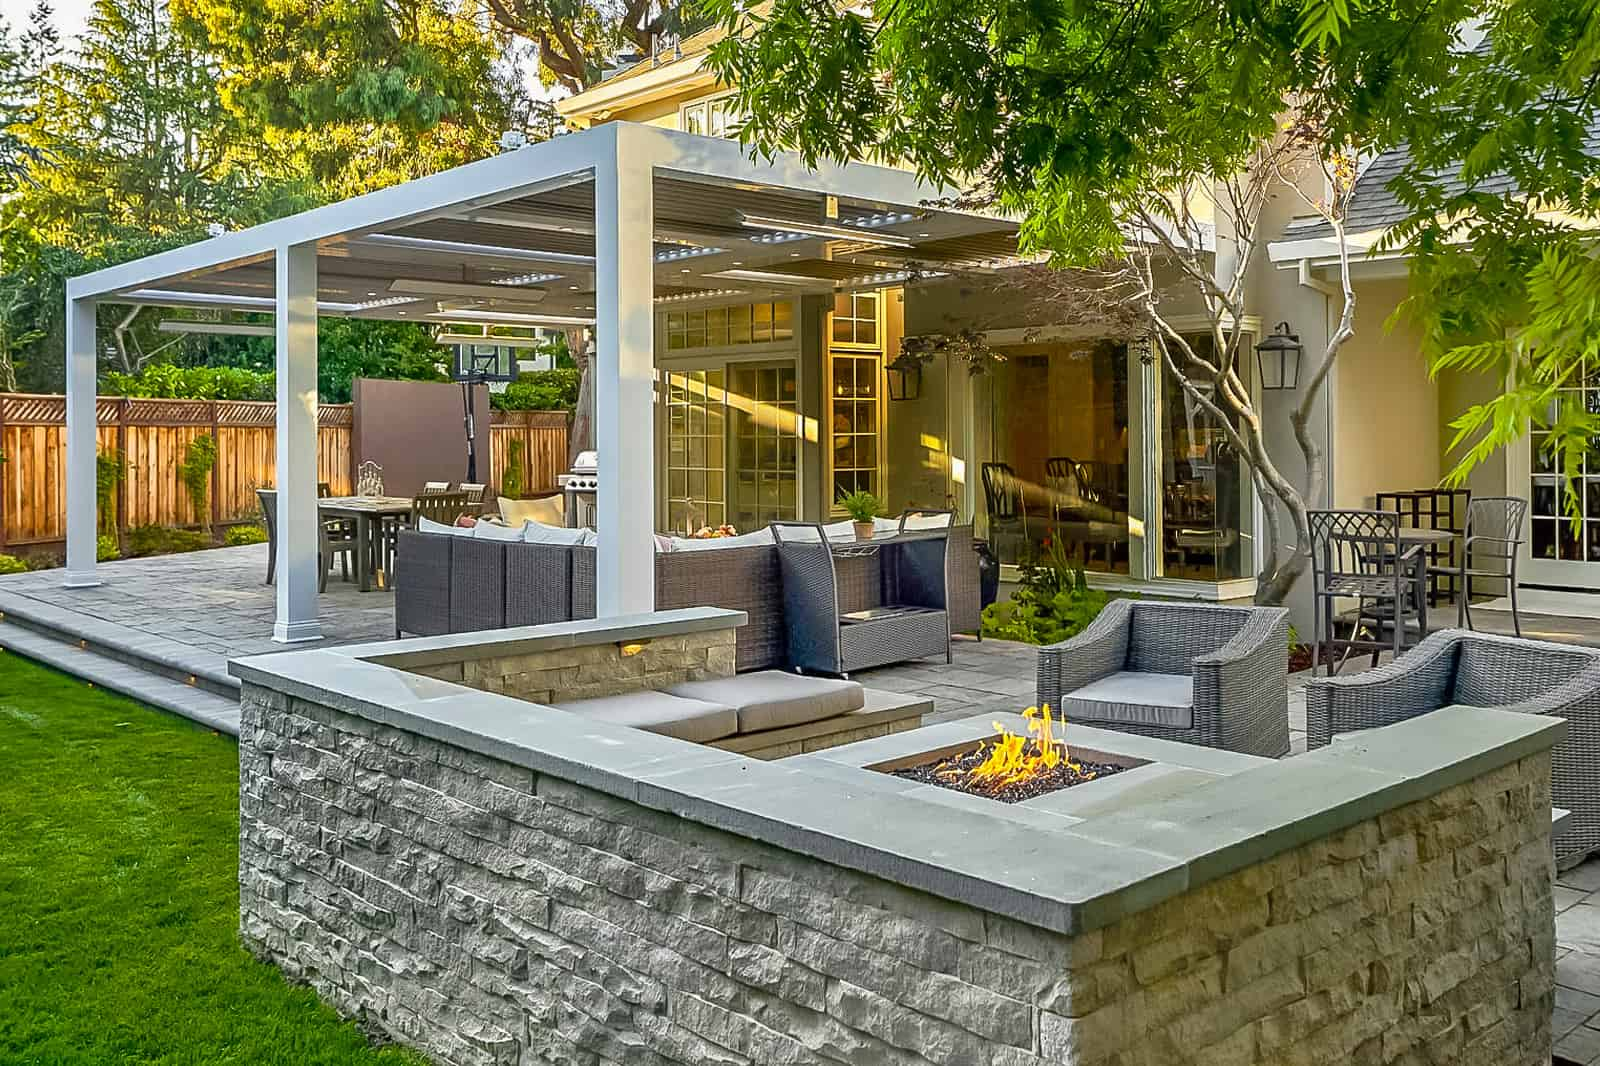 Outdoor living space with pergola and fire element